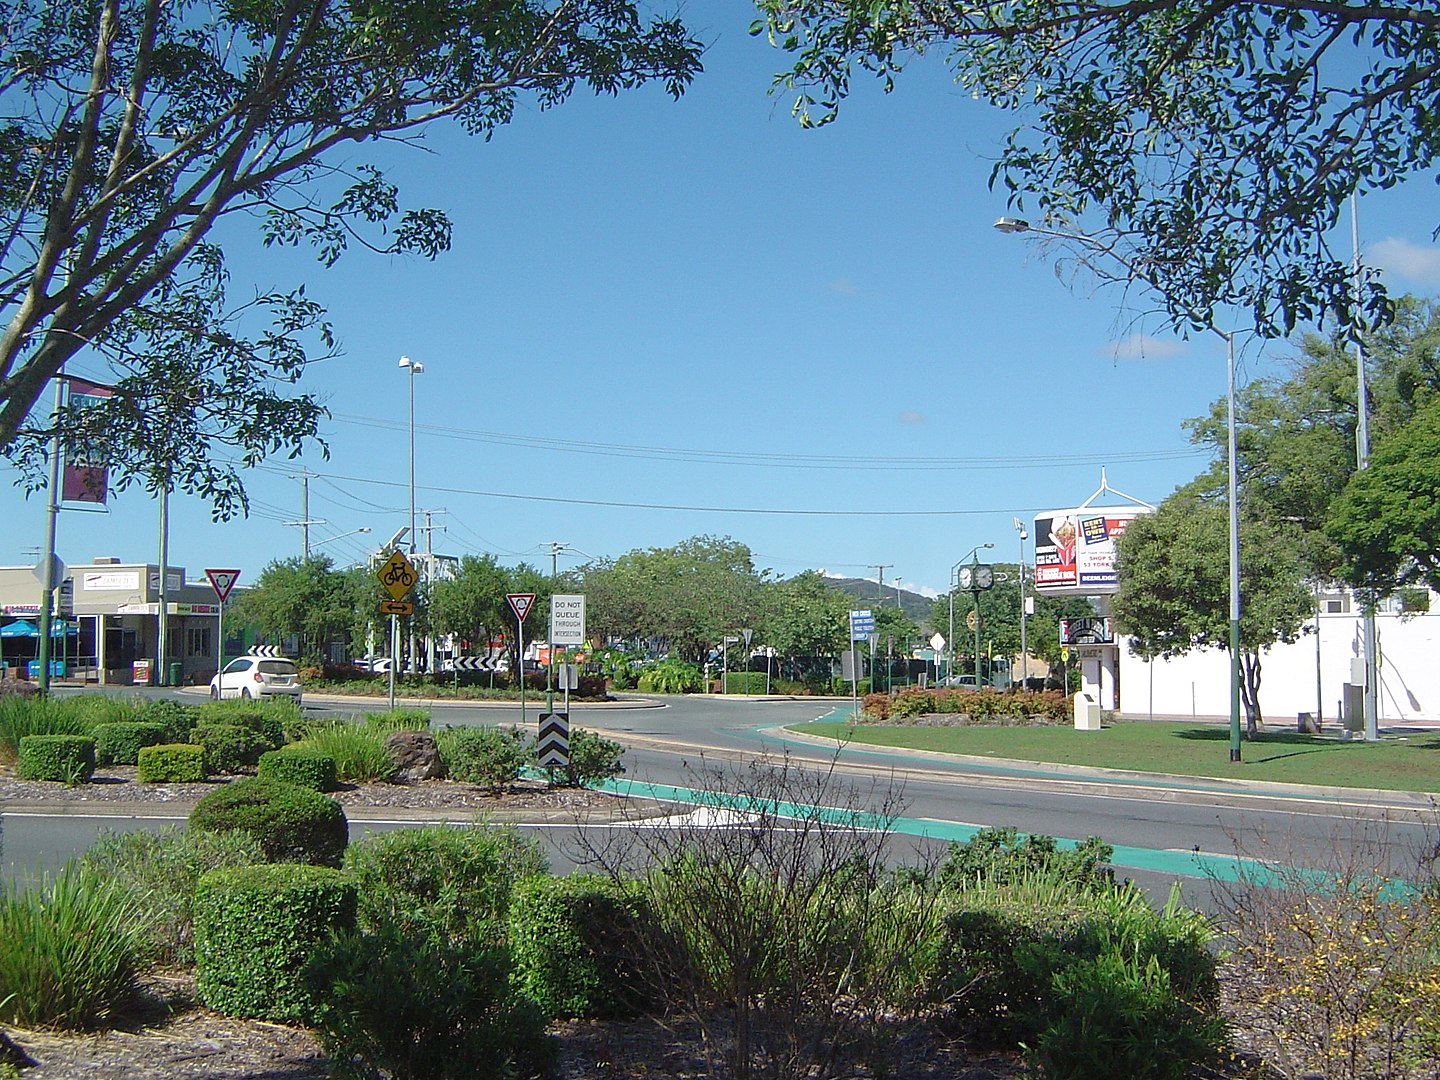 1440px-George_Road_roundabout,_Beenleigh